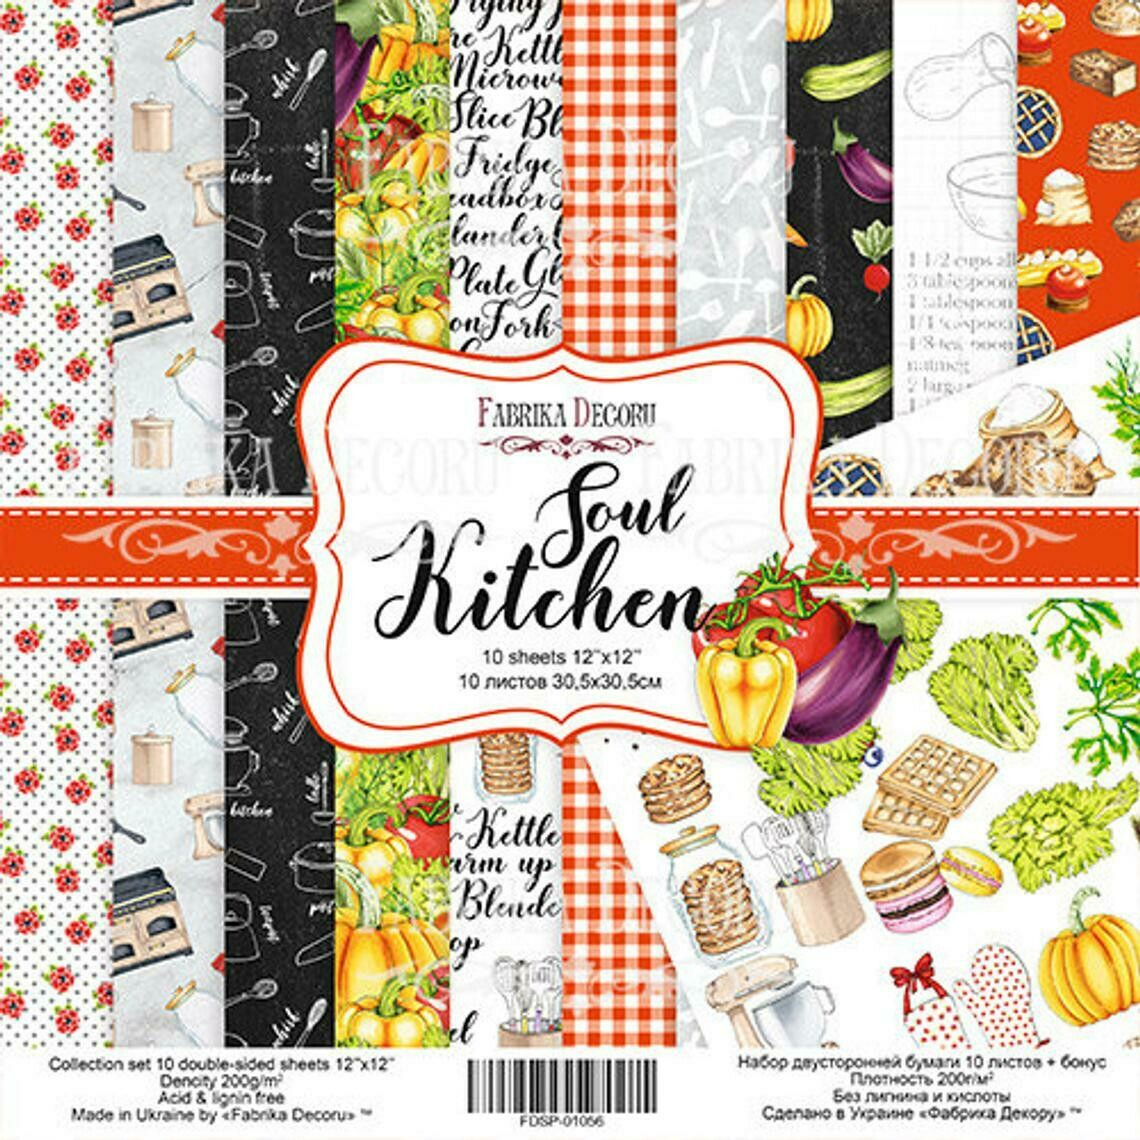 Soul Kitchen Collection with Stickers